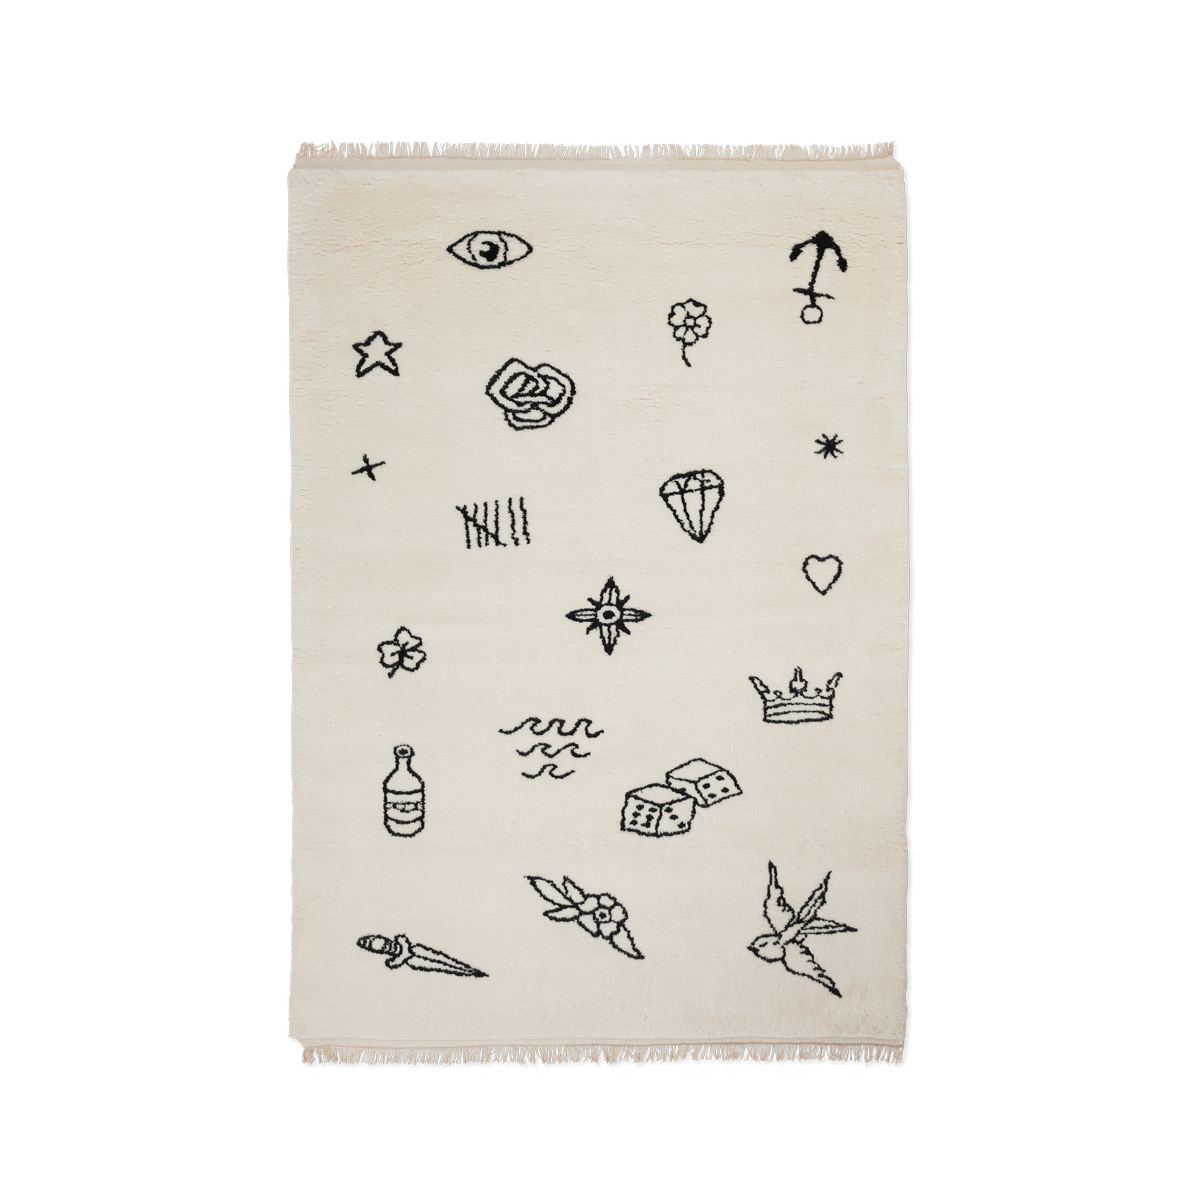 Product image of the shaggy rug Nomad in the color Cream. The rug has a irregular pattern of black classic sailor tattoos spread across it.